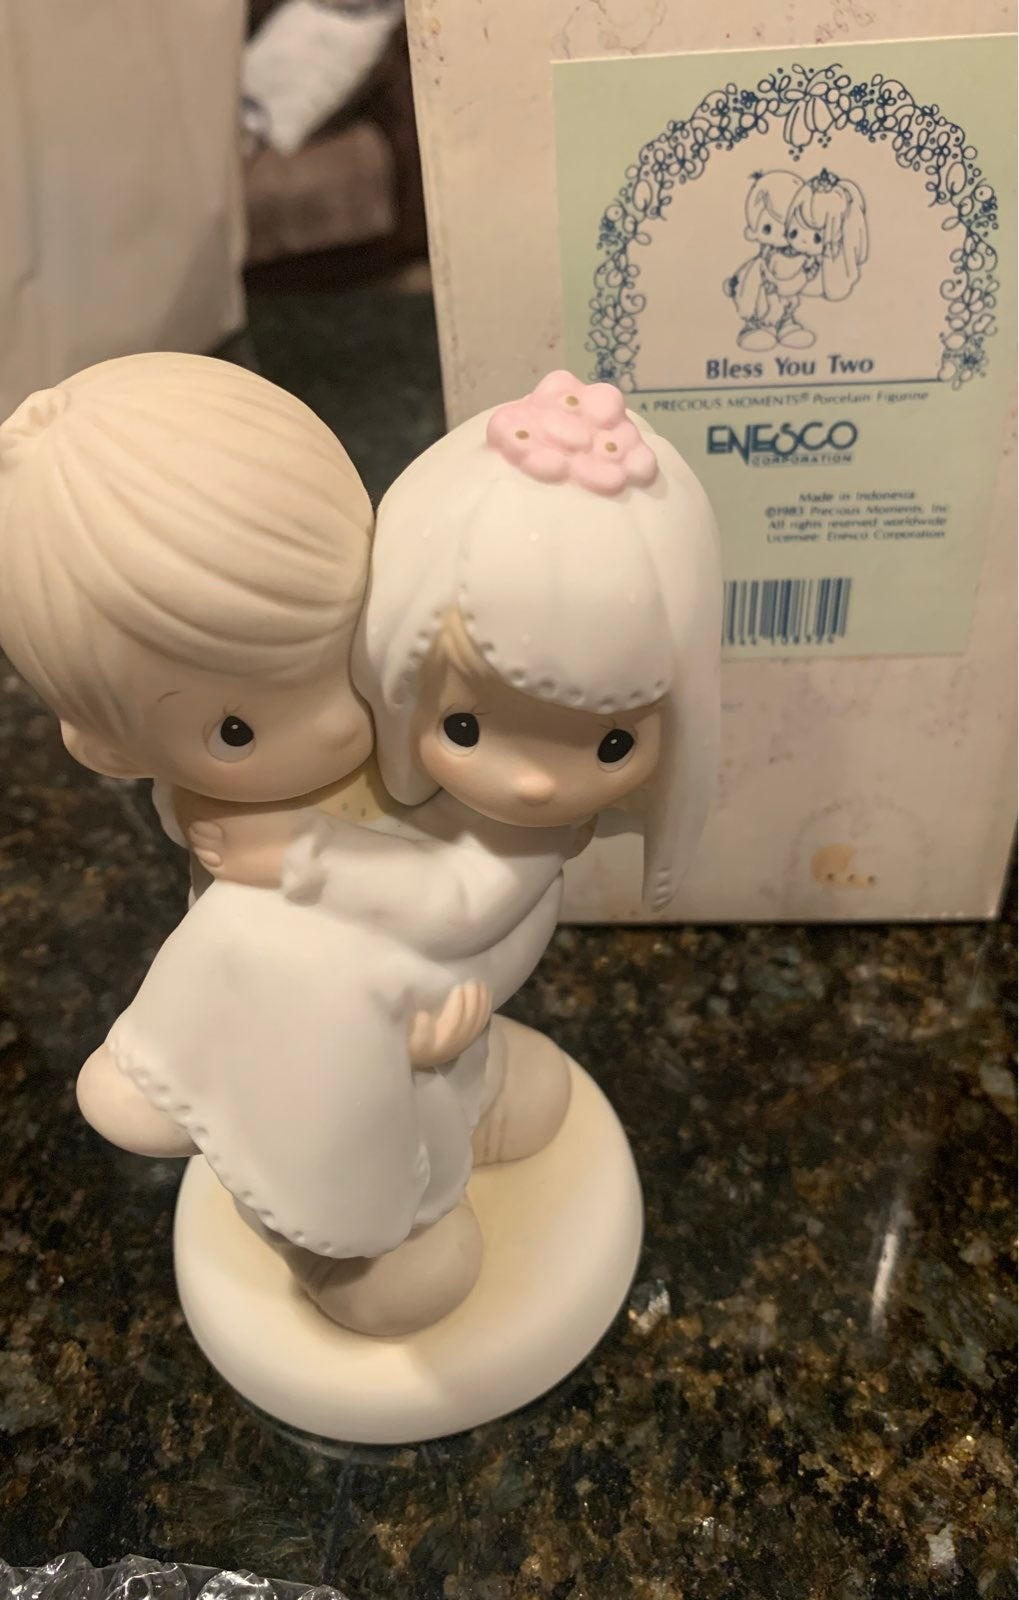 Bless you Two Precious Moments figurine